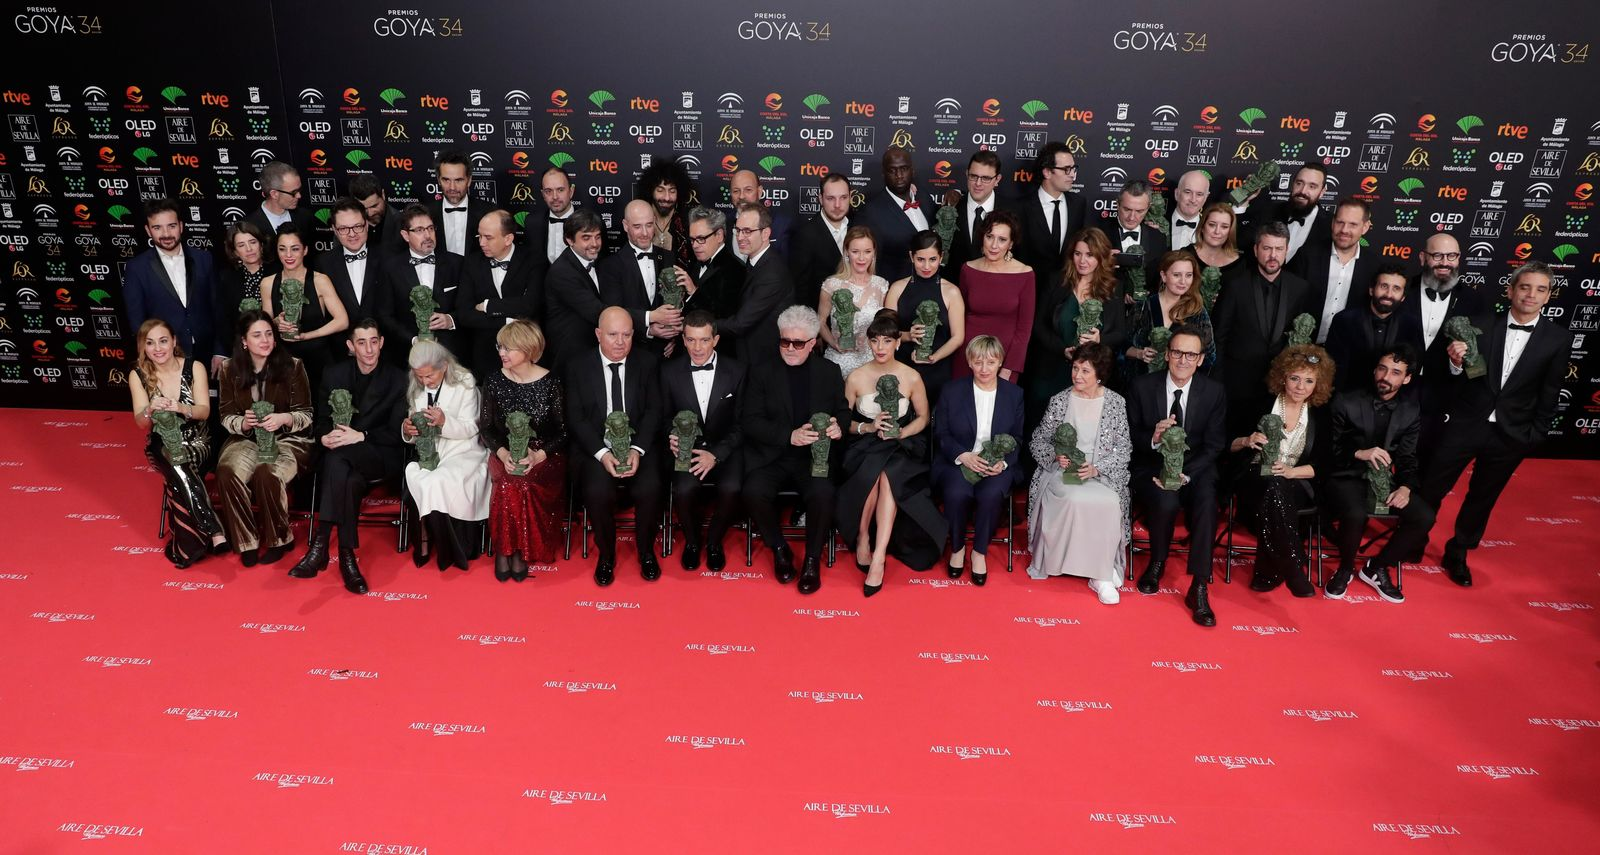 Goya Film Awards winners pose with their trophies for a family photo at the end of the Goya Film Awards Ceremony in Malaga, southern Spain, early Sunday, Jan. 26, 2020. The annual Goya Awards are Spain's main national film awards. (AP Photo/Manu Fernandez)